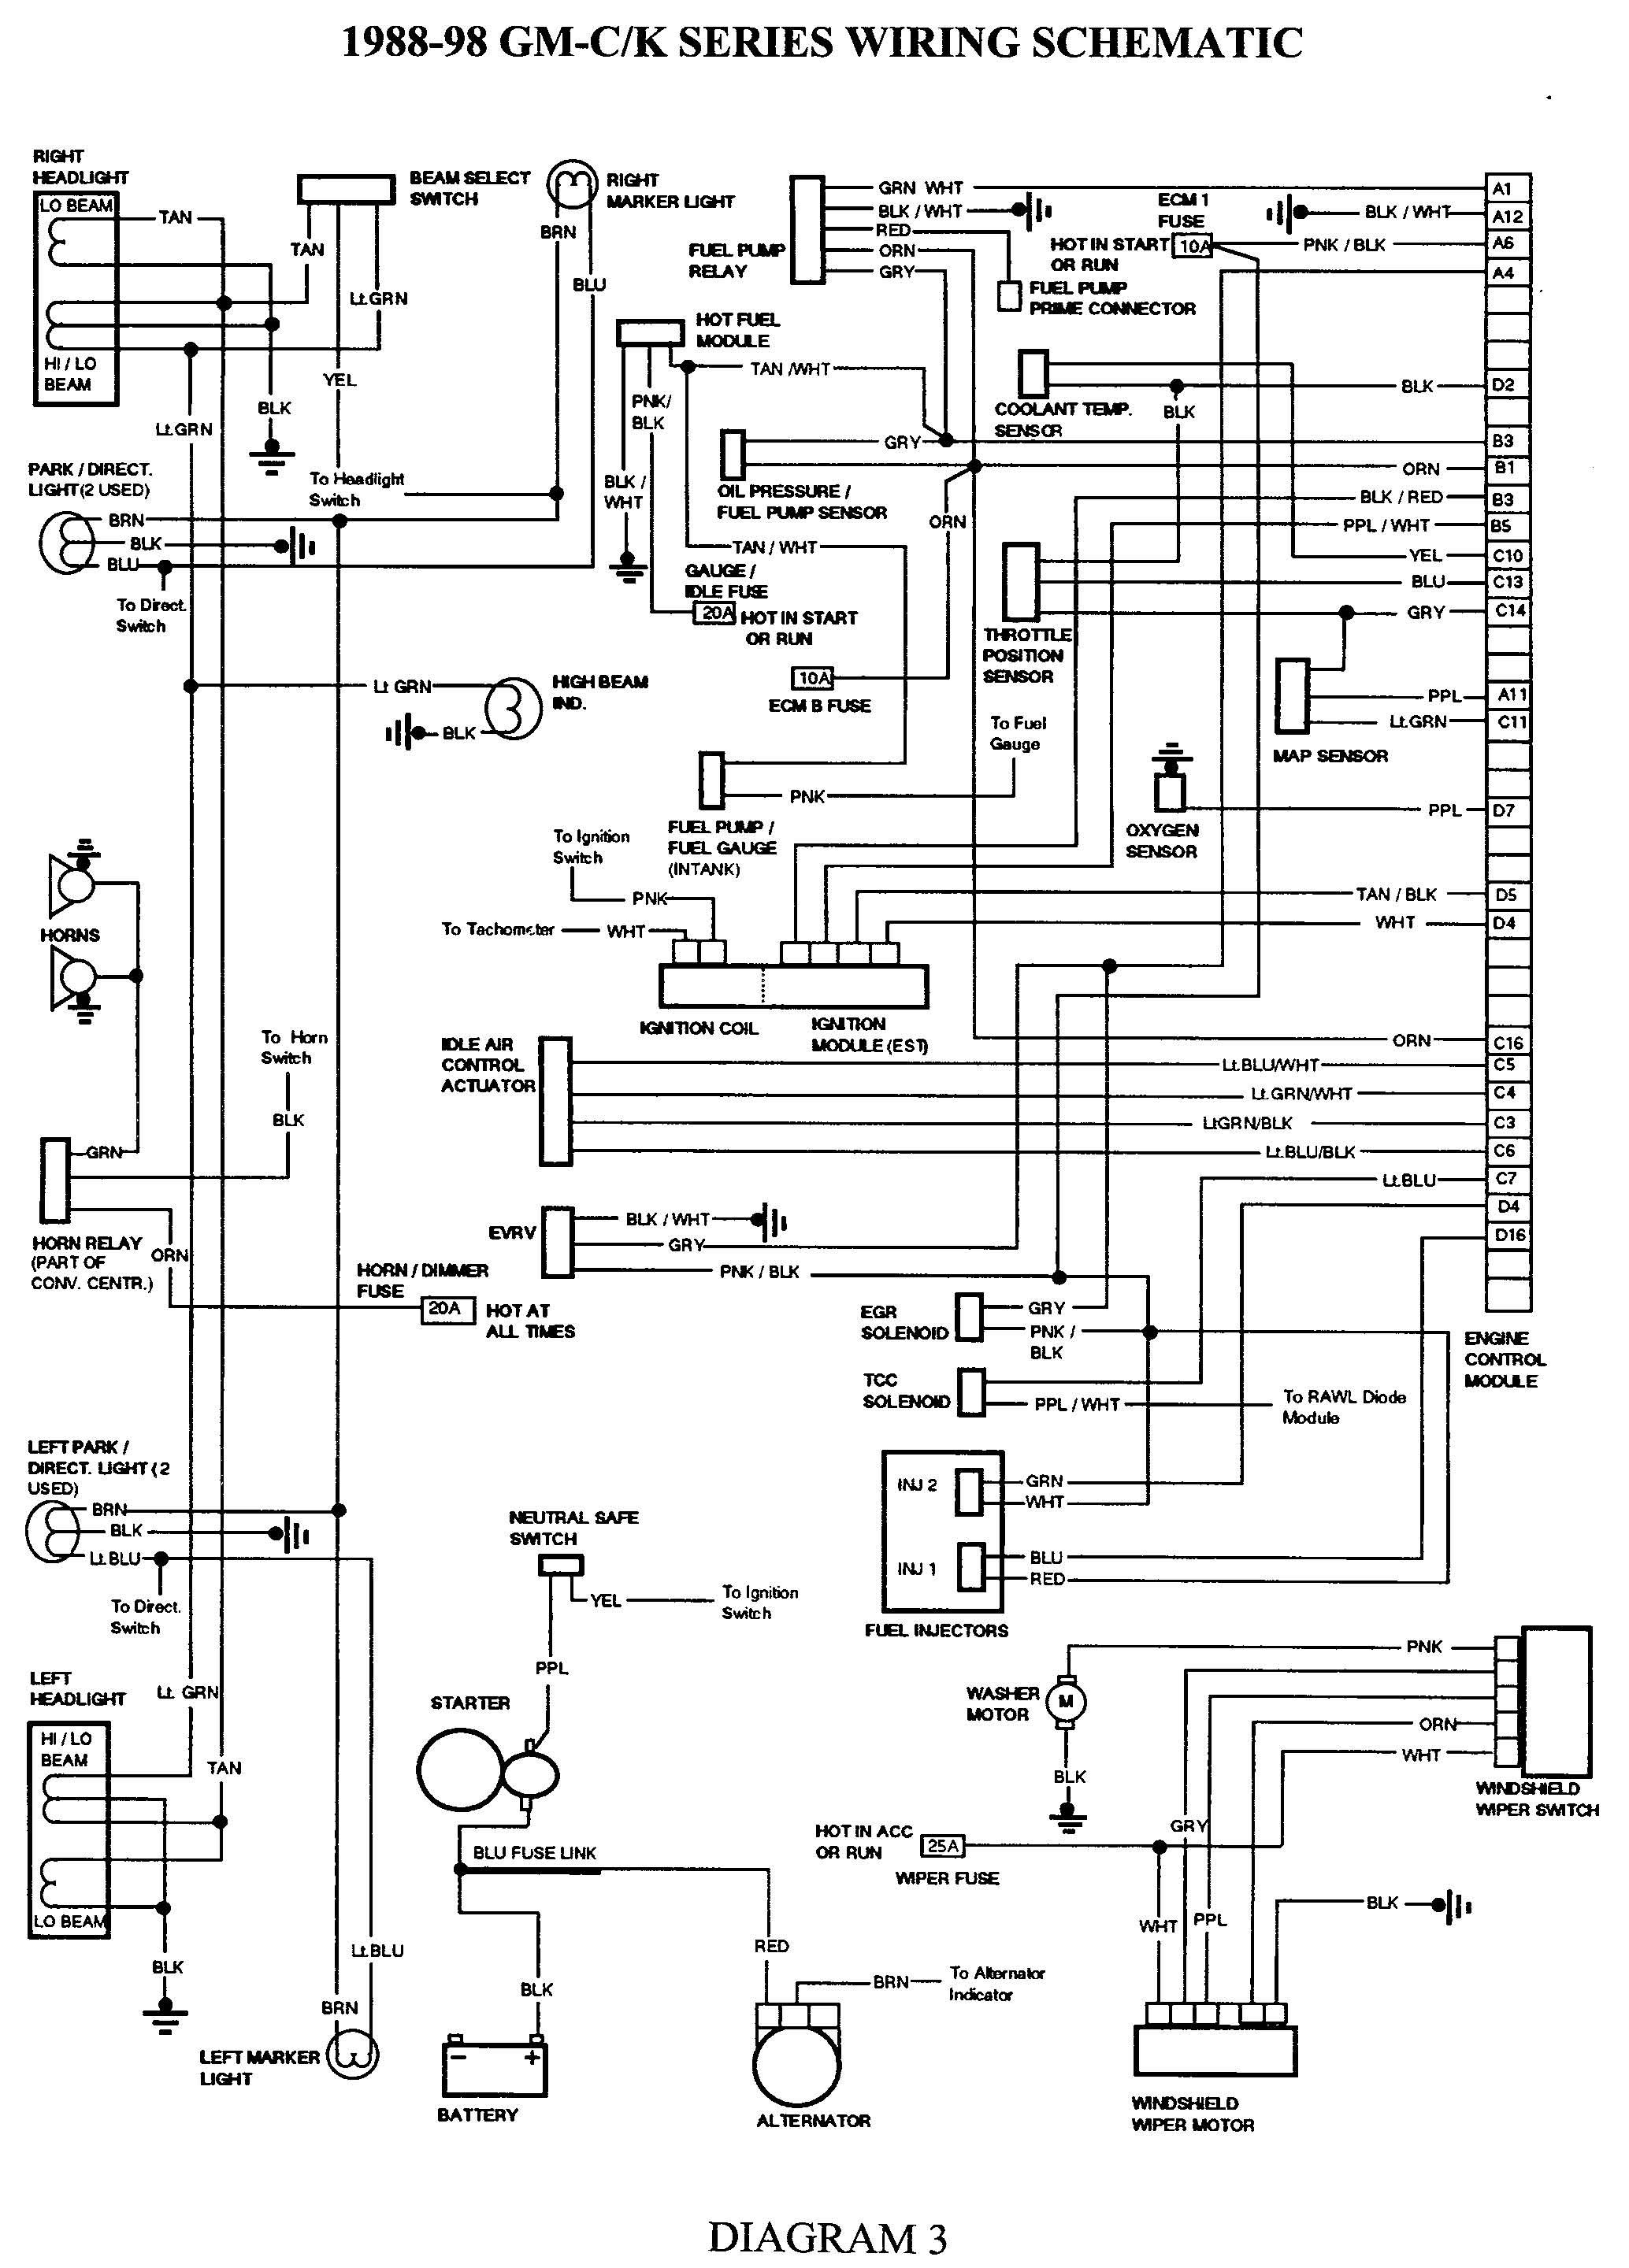 2005 Gmc Sierra Wiring Diagram - 19.4.petraoberheit.de •  Gmc Windshield Wiper Wiring Diagram on brake wiring diagrams, motor wiring diagrams, chevrolet engine vacuum routing diagrams, power window wiring diagrams, thermostat wiring diagrams, rear wiper wiring diagrams, 1995 volkswagen jetta electrical diagrams, electrical wiring diagrams, radio wiring diagrams, light wiring diagrams, hvac wiring diagrams, alternator wiring diagrams, switch wiring diagrams, truck wiring diagrams, ignition wiring diagrams, steering column wiring diagrams, fuel gauge wiring diagrams, water pump wiring diagrams, starter wiring diagrams, wiper circuit diagrams,